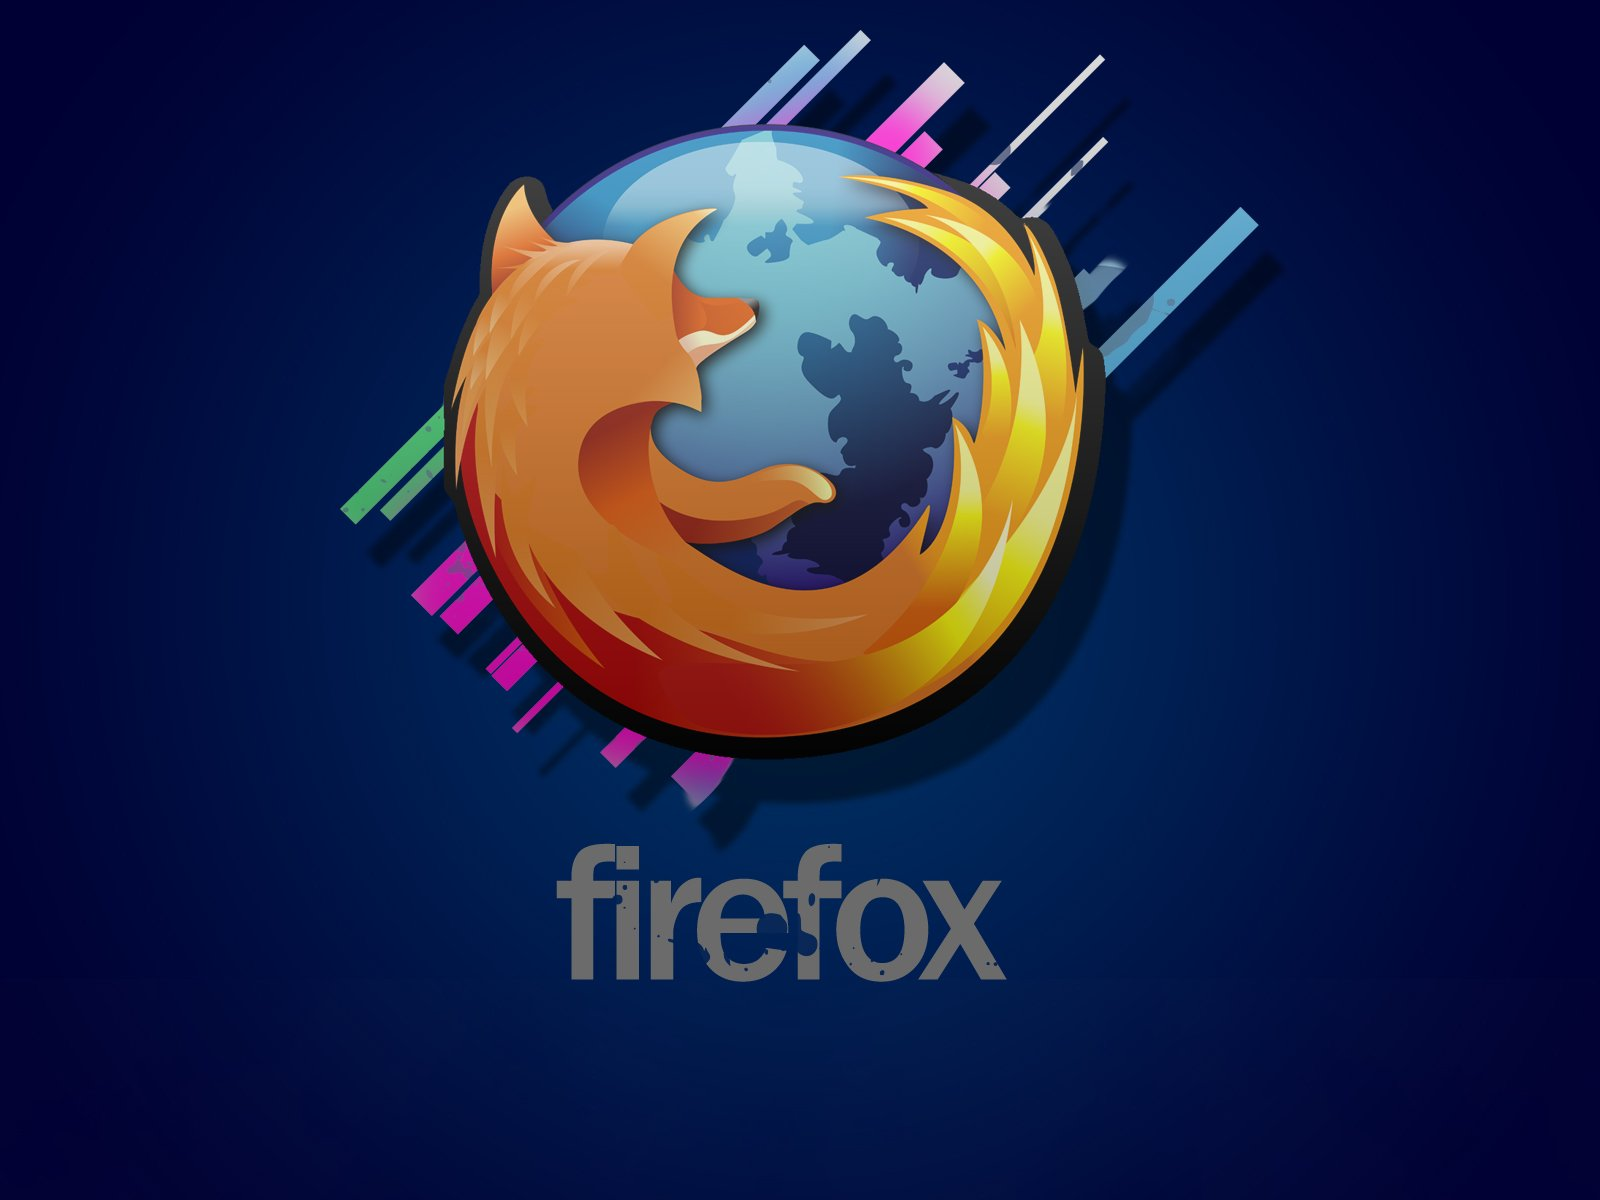 Firefox HD Wallpapers Mozilla Background Desktop Wallpapers 1600x1200